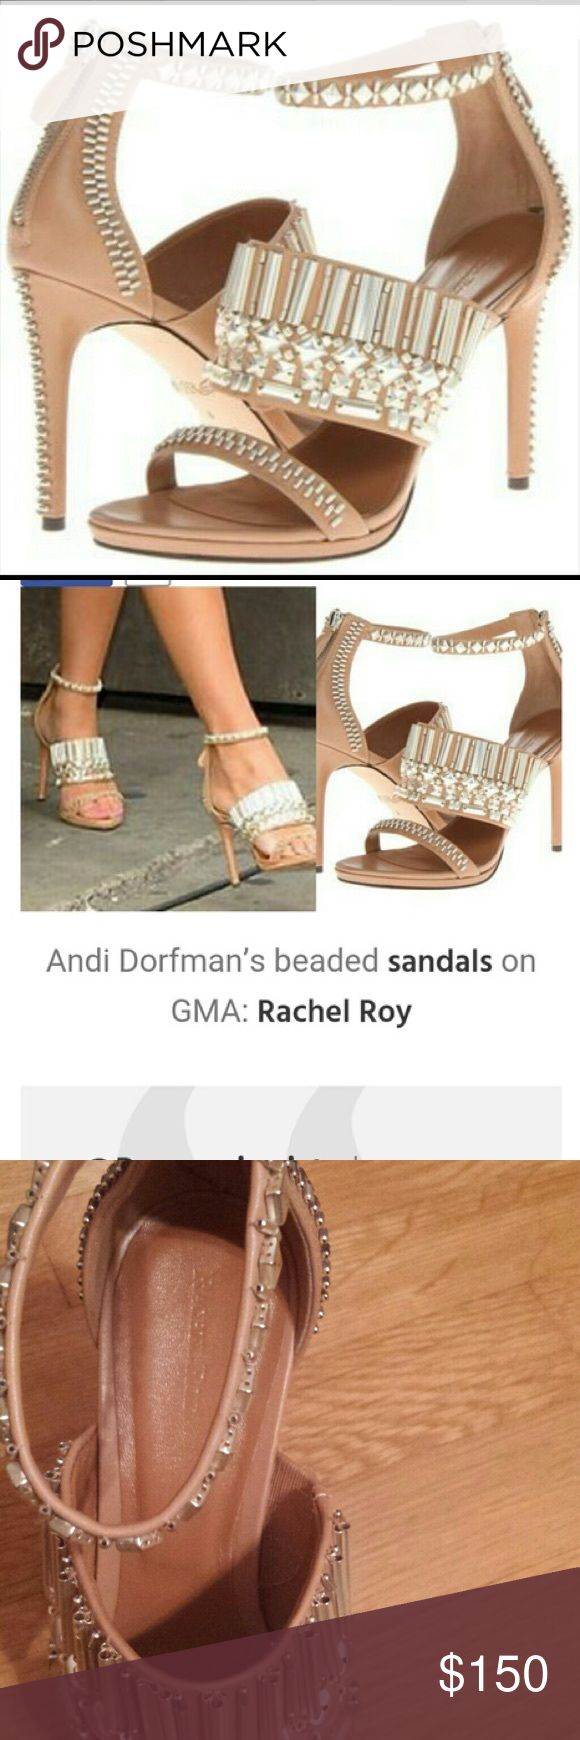 """Rachel Roy Padma Beaded Platform Sandals These gorgeous, sexy Rachel Roy studded heels would look great with almost any outfit. Super hot!! As seen on The Bachelorette, Andi Dorfman. The embellishments are a beautiful brushed silver. NEW in dust bag. Great deal for these gorgeous, designer heels! - Leather - Imported - Leather sole - 4 1/2"""" embellished heel; 1/2"""" platform = 4"""" equiv. - Intricate beading on all surfaces creates an electrifying glow in this rear-zip pump. Rachel Roy Shoes…"""